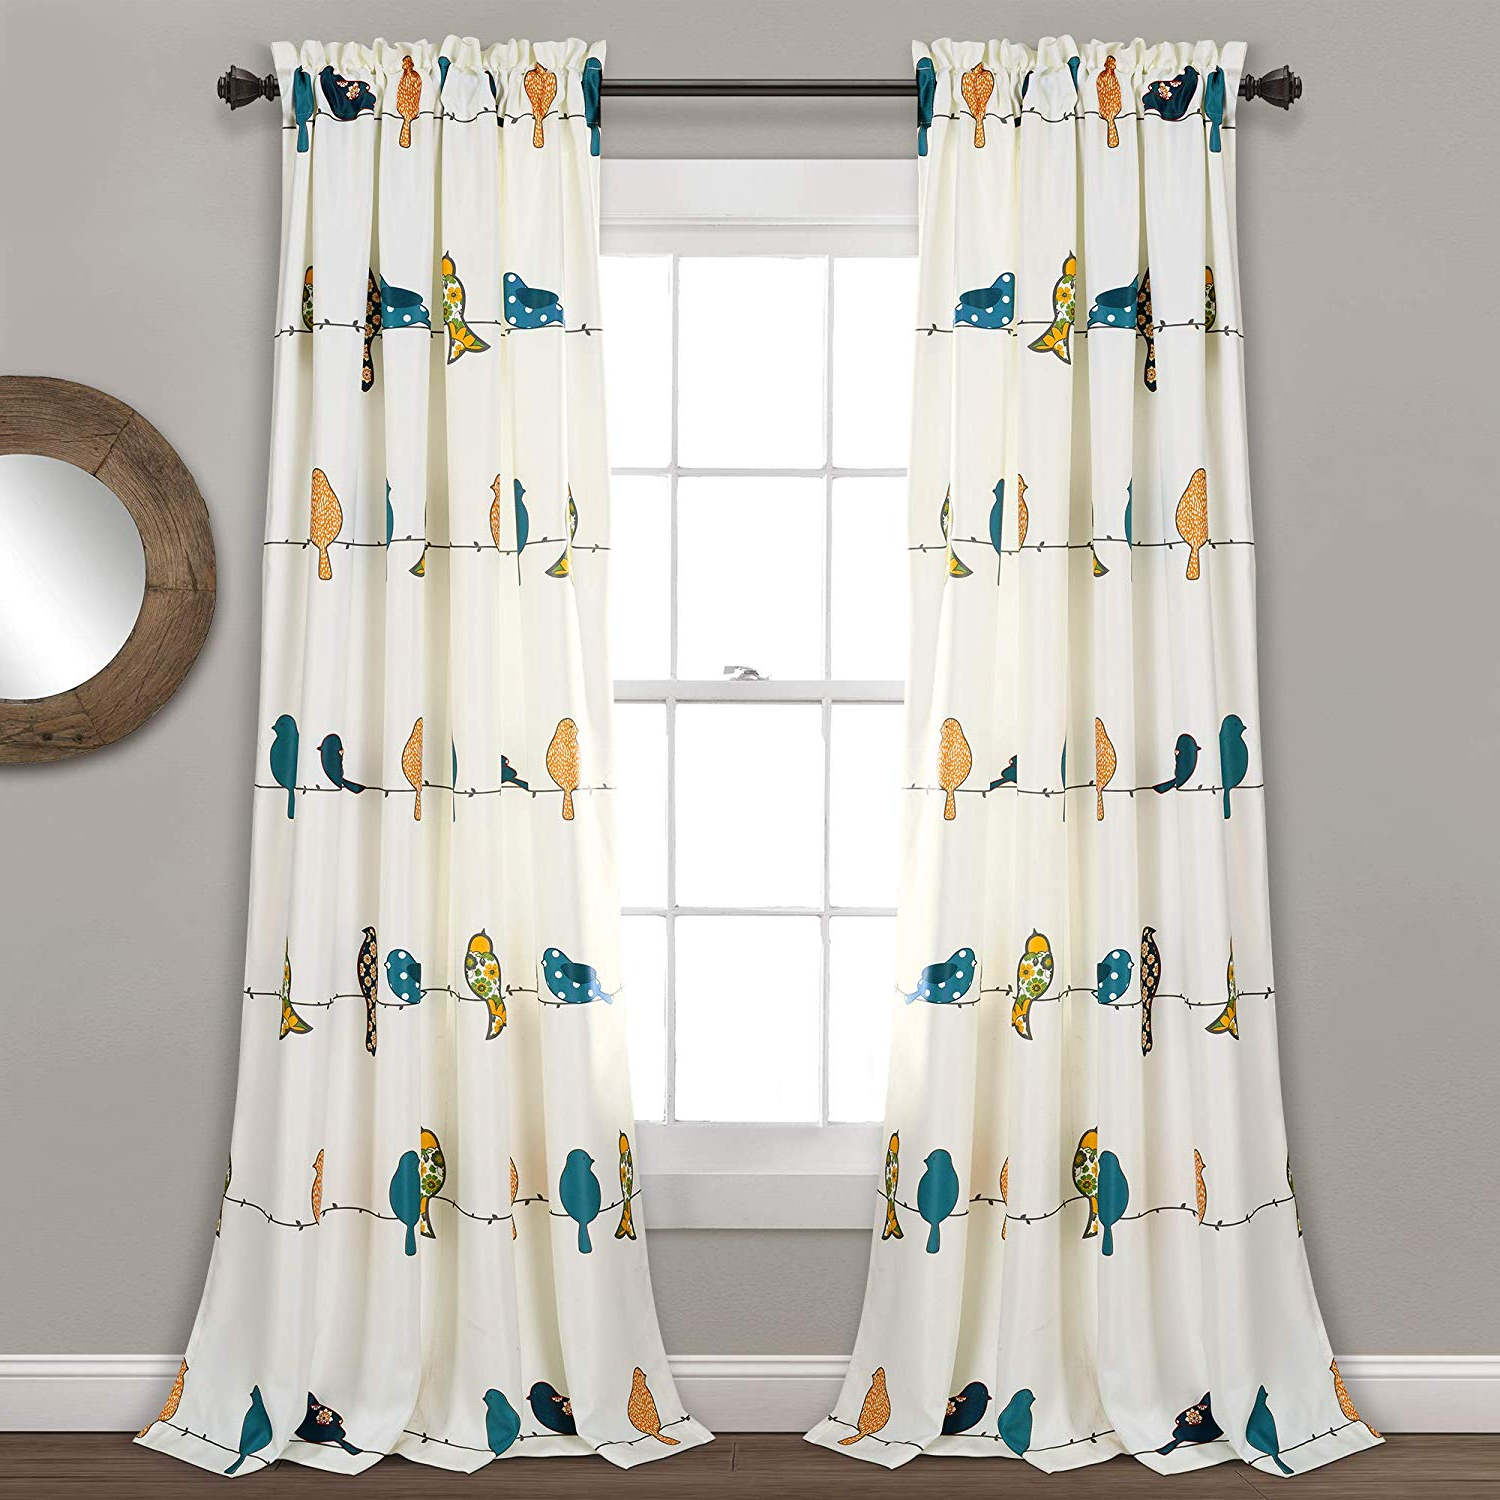 "Newest Rowley Birds Valances In Lush Decor Rowley Birds Curtains Room Darkening Window Panel Set For Living, Dining, Bedroom (pair), 84"" L, Multi (View 10 of 20)"